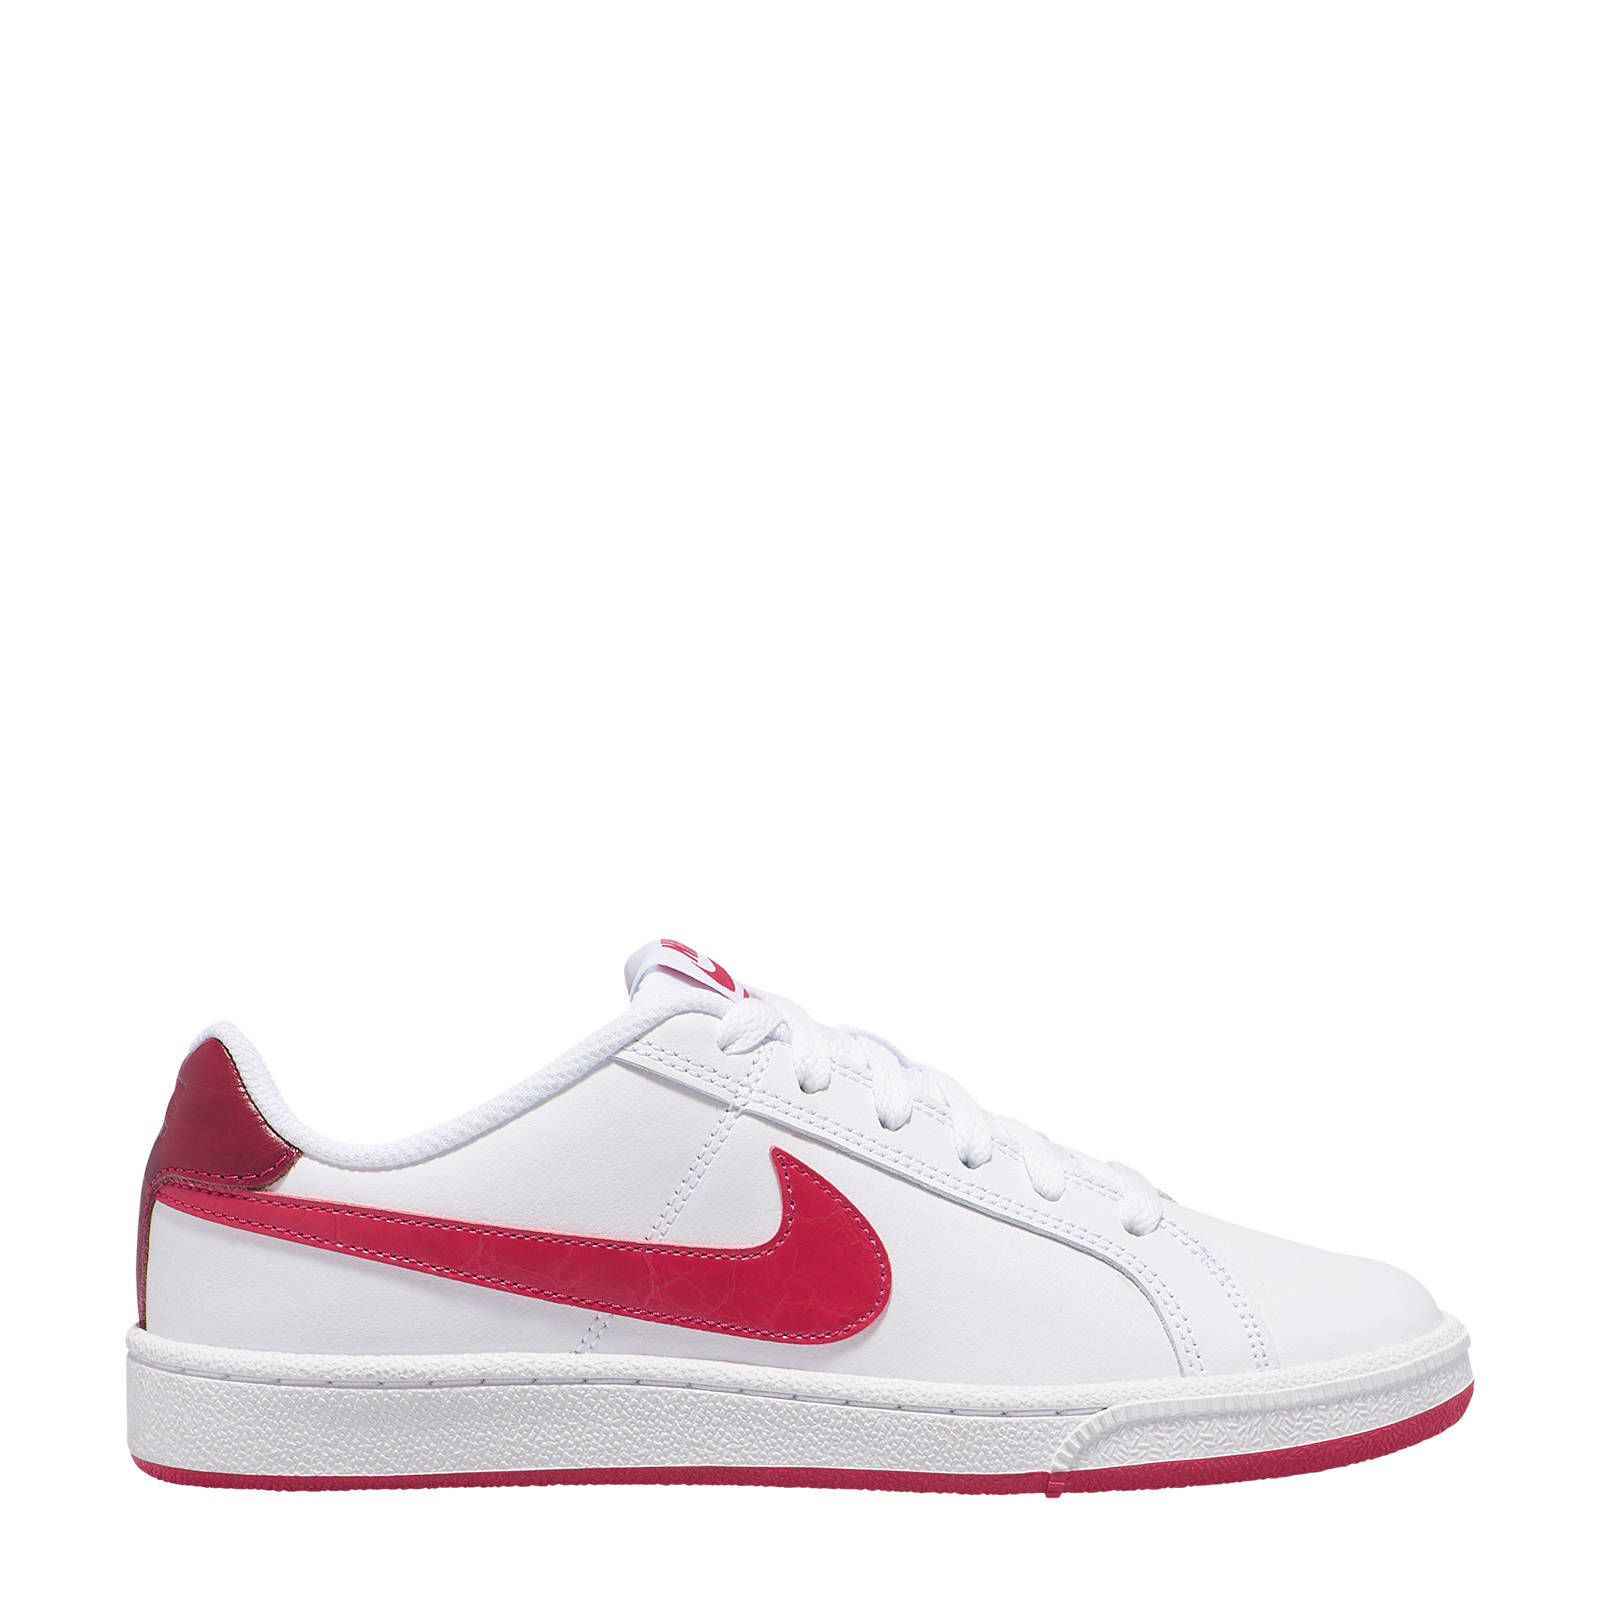 By Photo Congress || Nike Sneakers Wit Rood